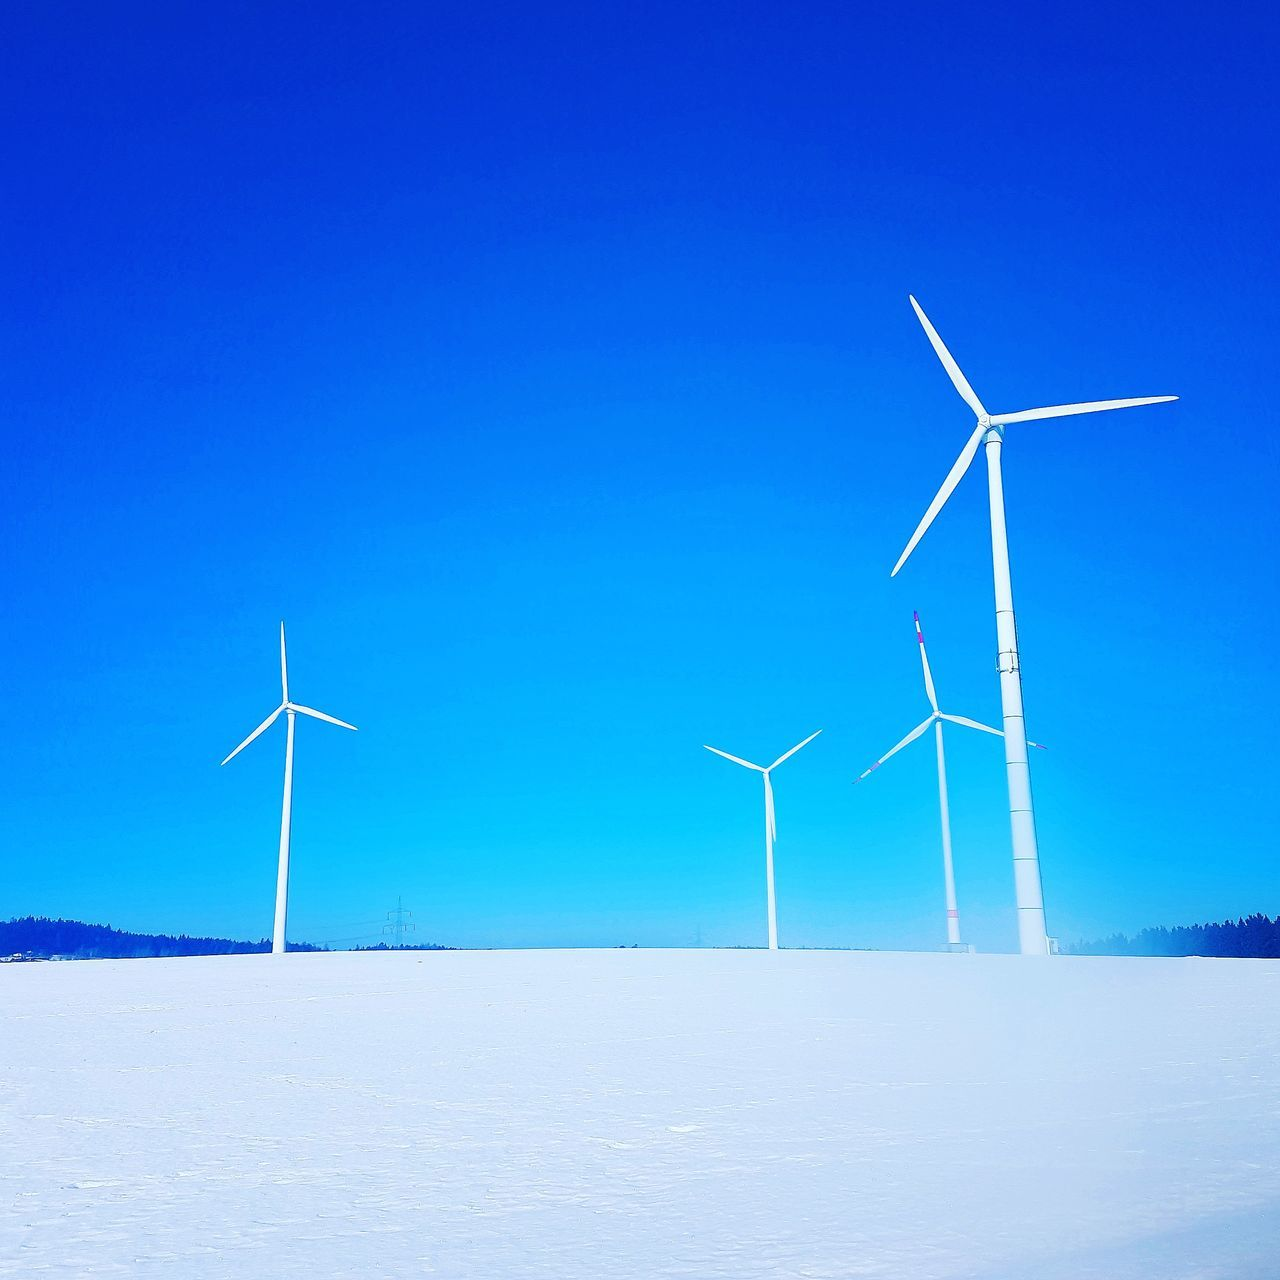 wind turbine, wind power, alternative energy, environmental conservation, fuel and power generation, renewable energy, cold temperature, winter, windmill, industrial windmill, snow, blue, outdoors, nature, field, day, no people, landscape, tranquility, beauty in nature, scenics, technology, sky